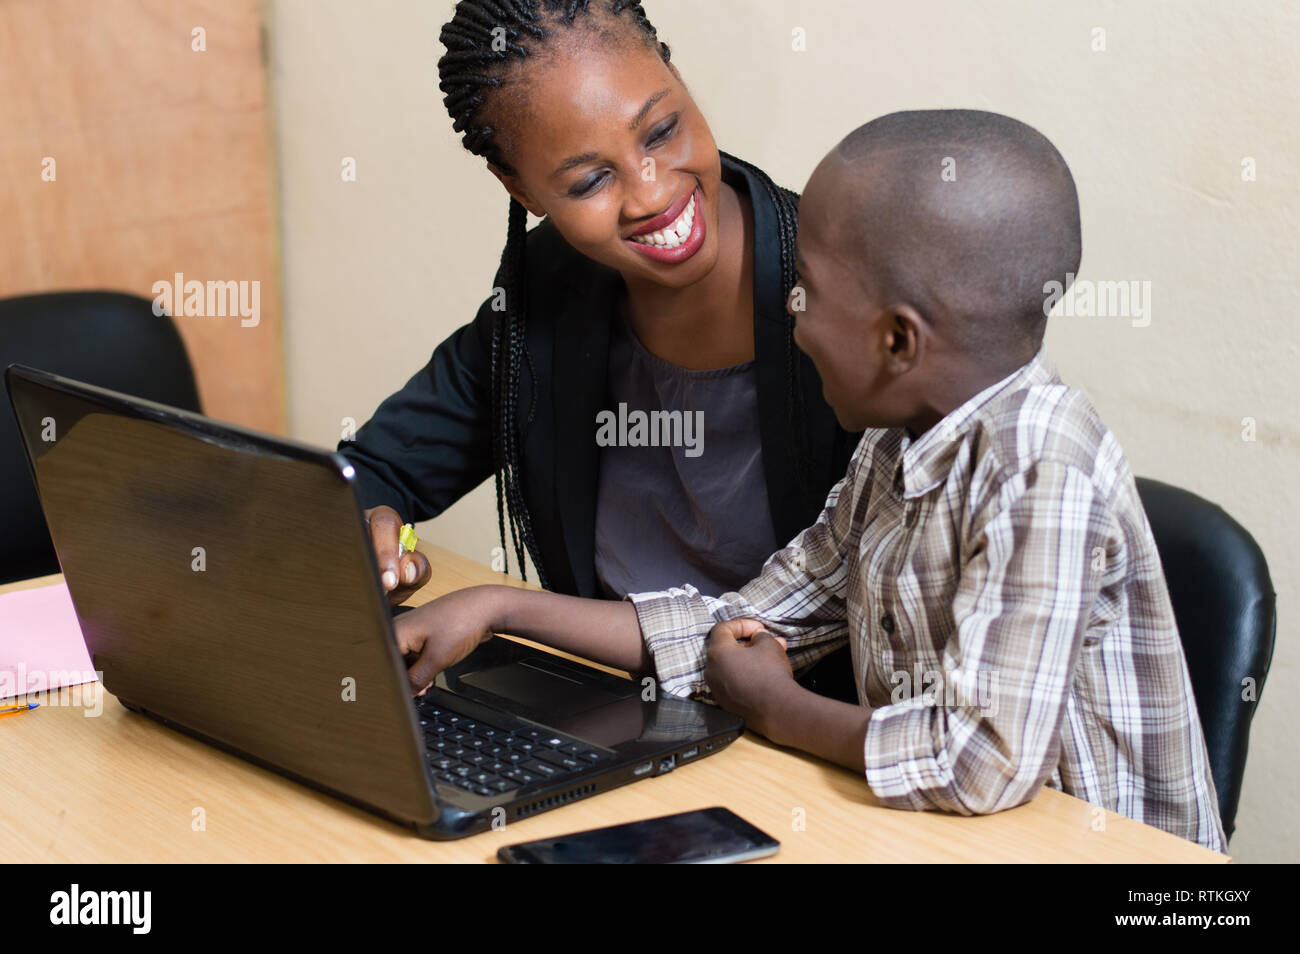 The very happy child, laughs loudly with his mistress. - Stock Image